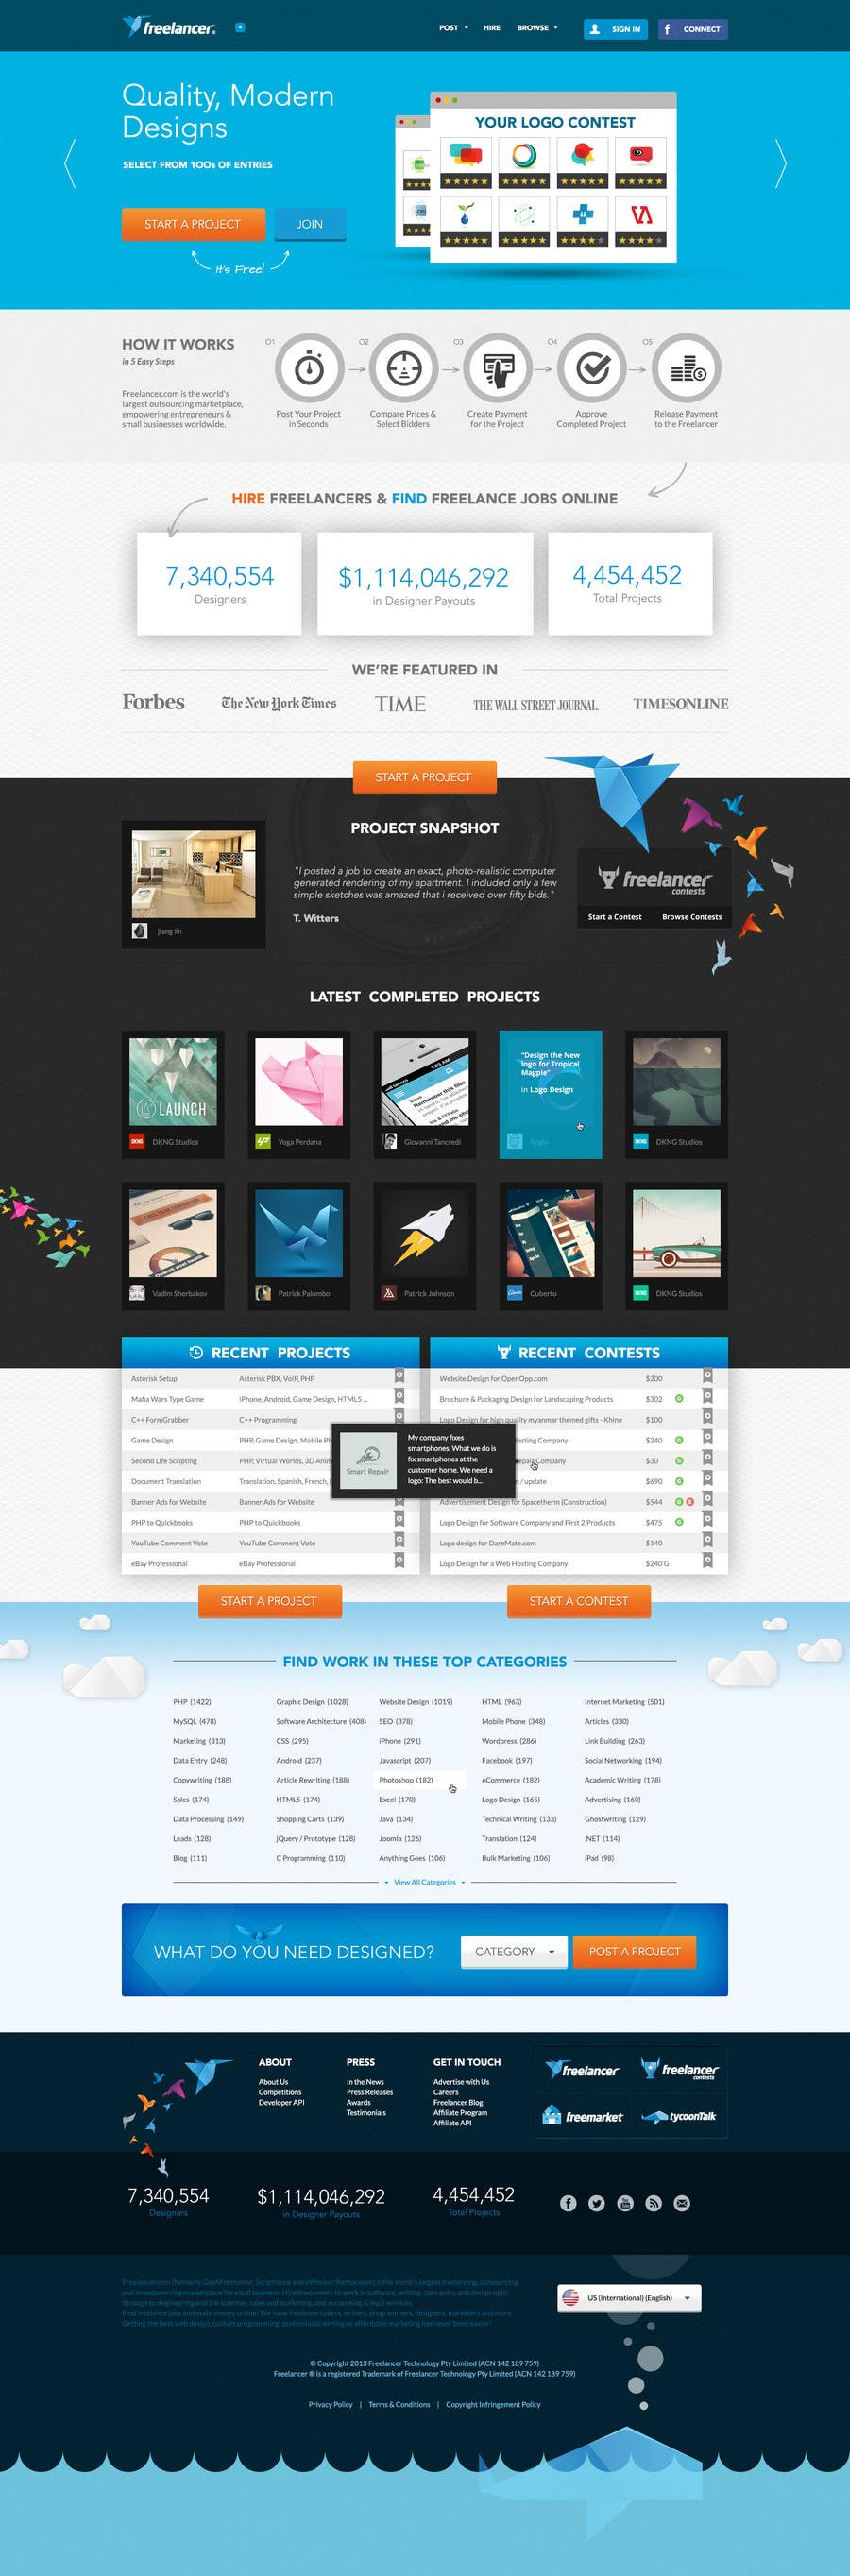 #612 for Freelancer.com contest! Design our Homepage! by MadebyPat